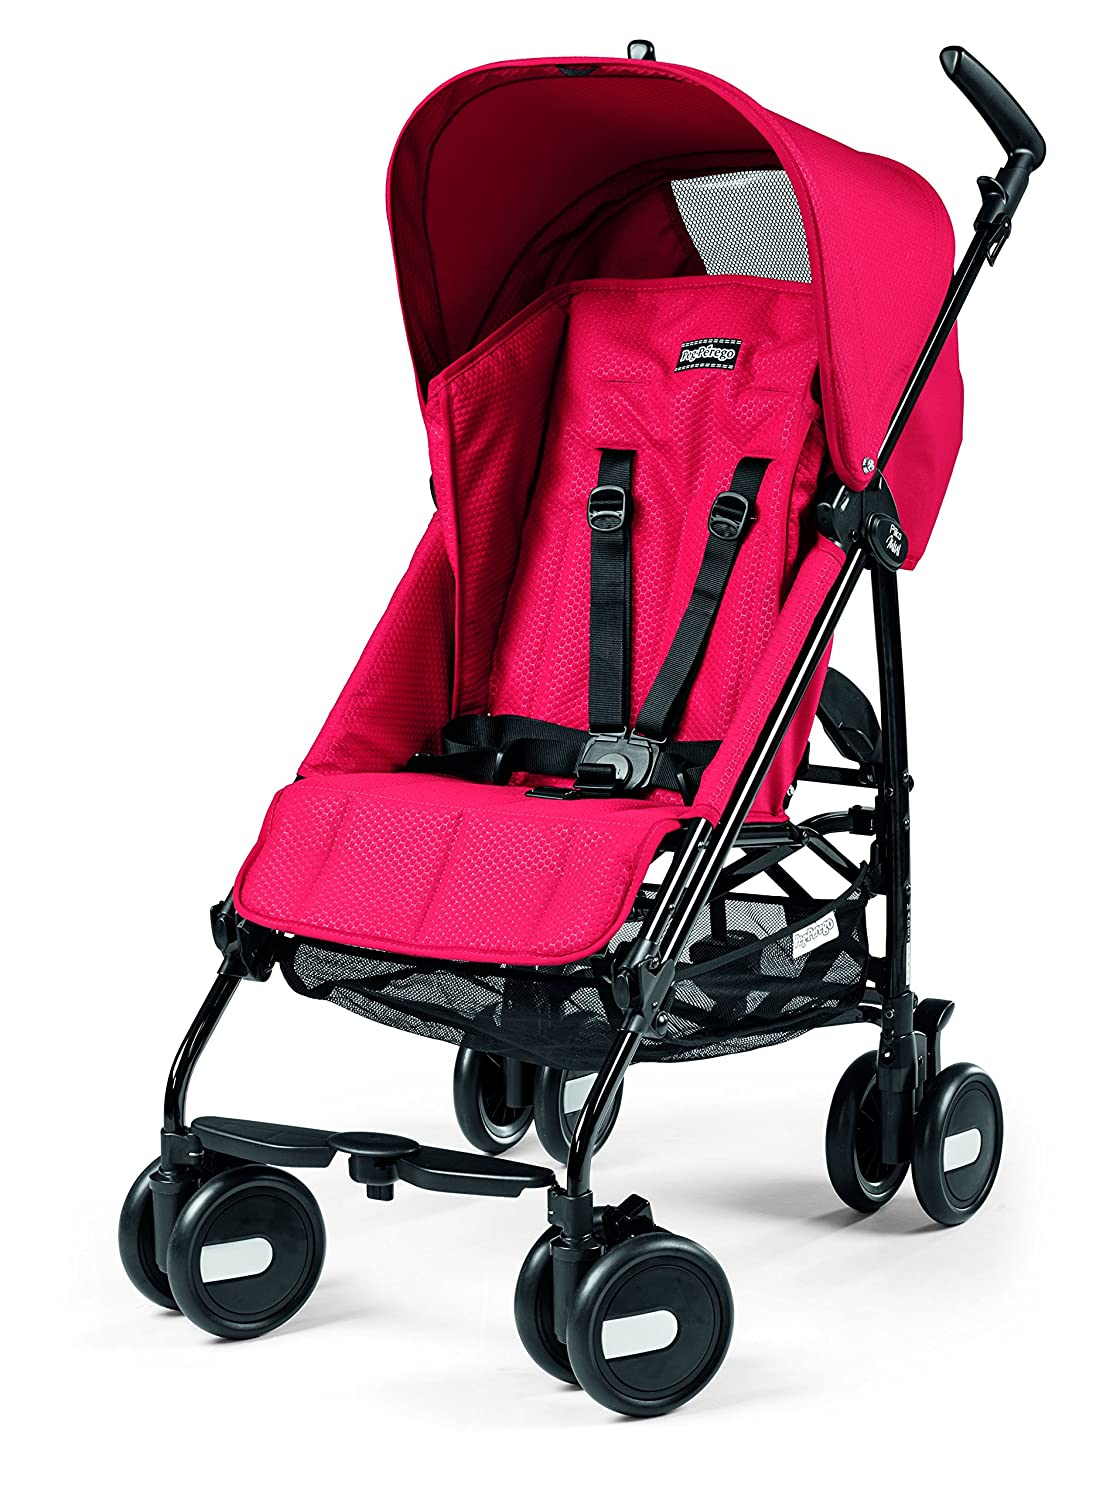 Peg Perego Pliko Mini Umbrella Strollers, Mod Red by Peg Perego: Amazon.es: Bebé